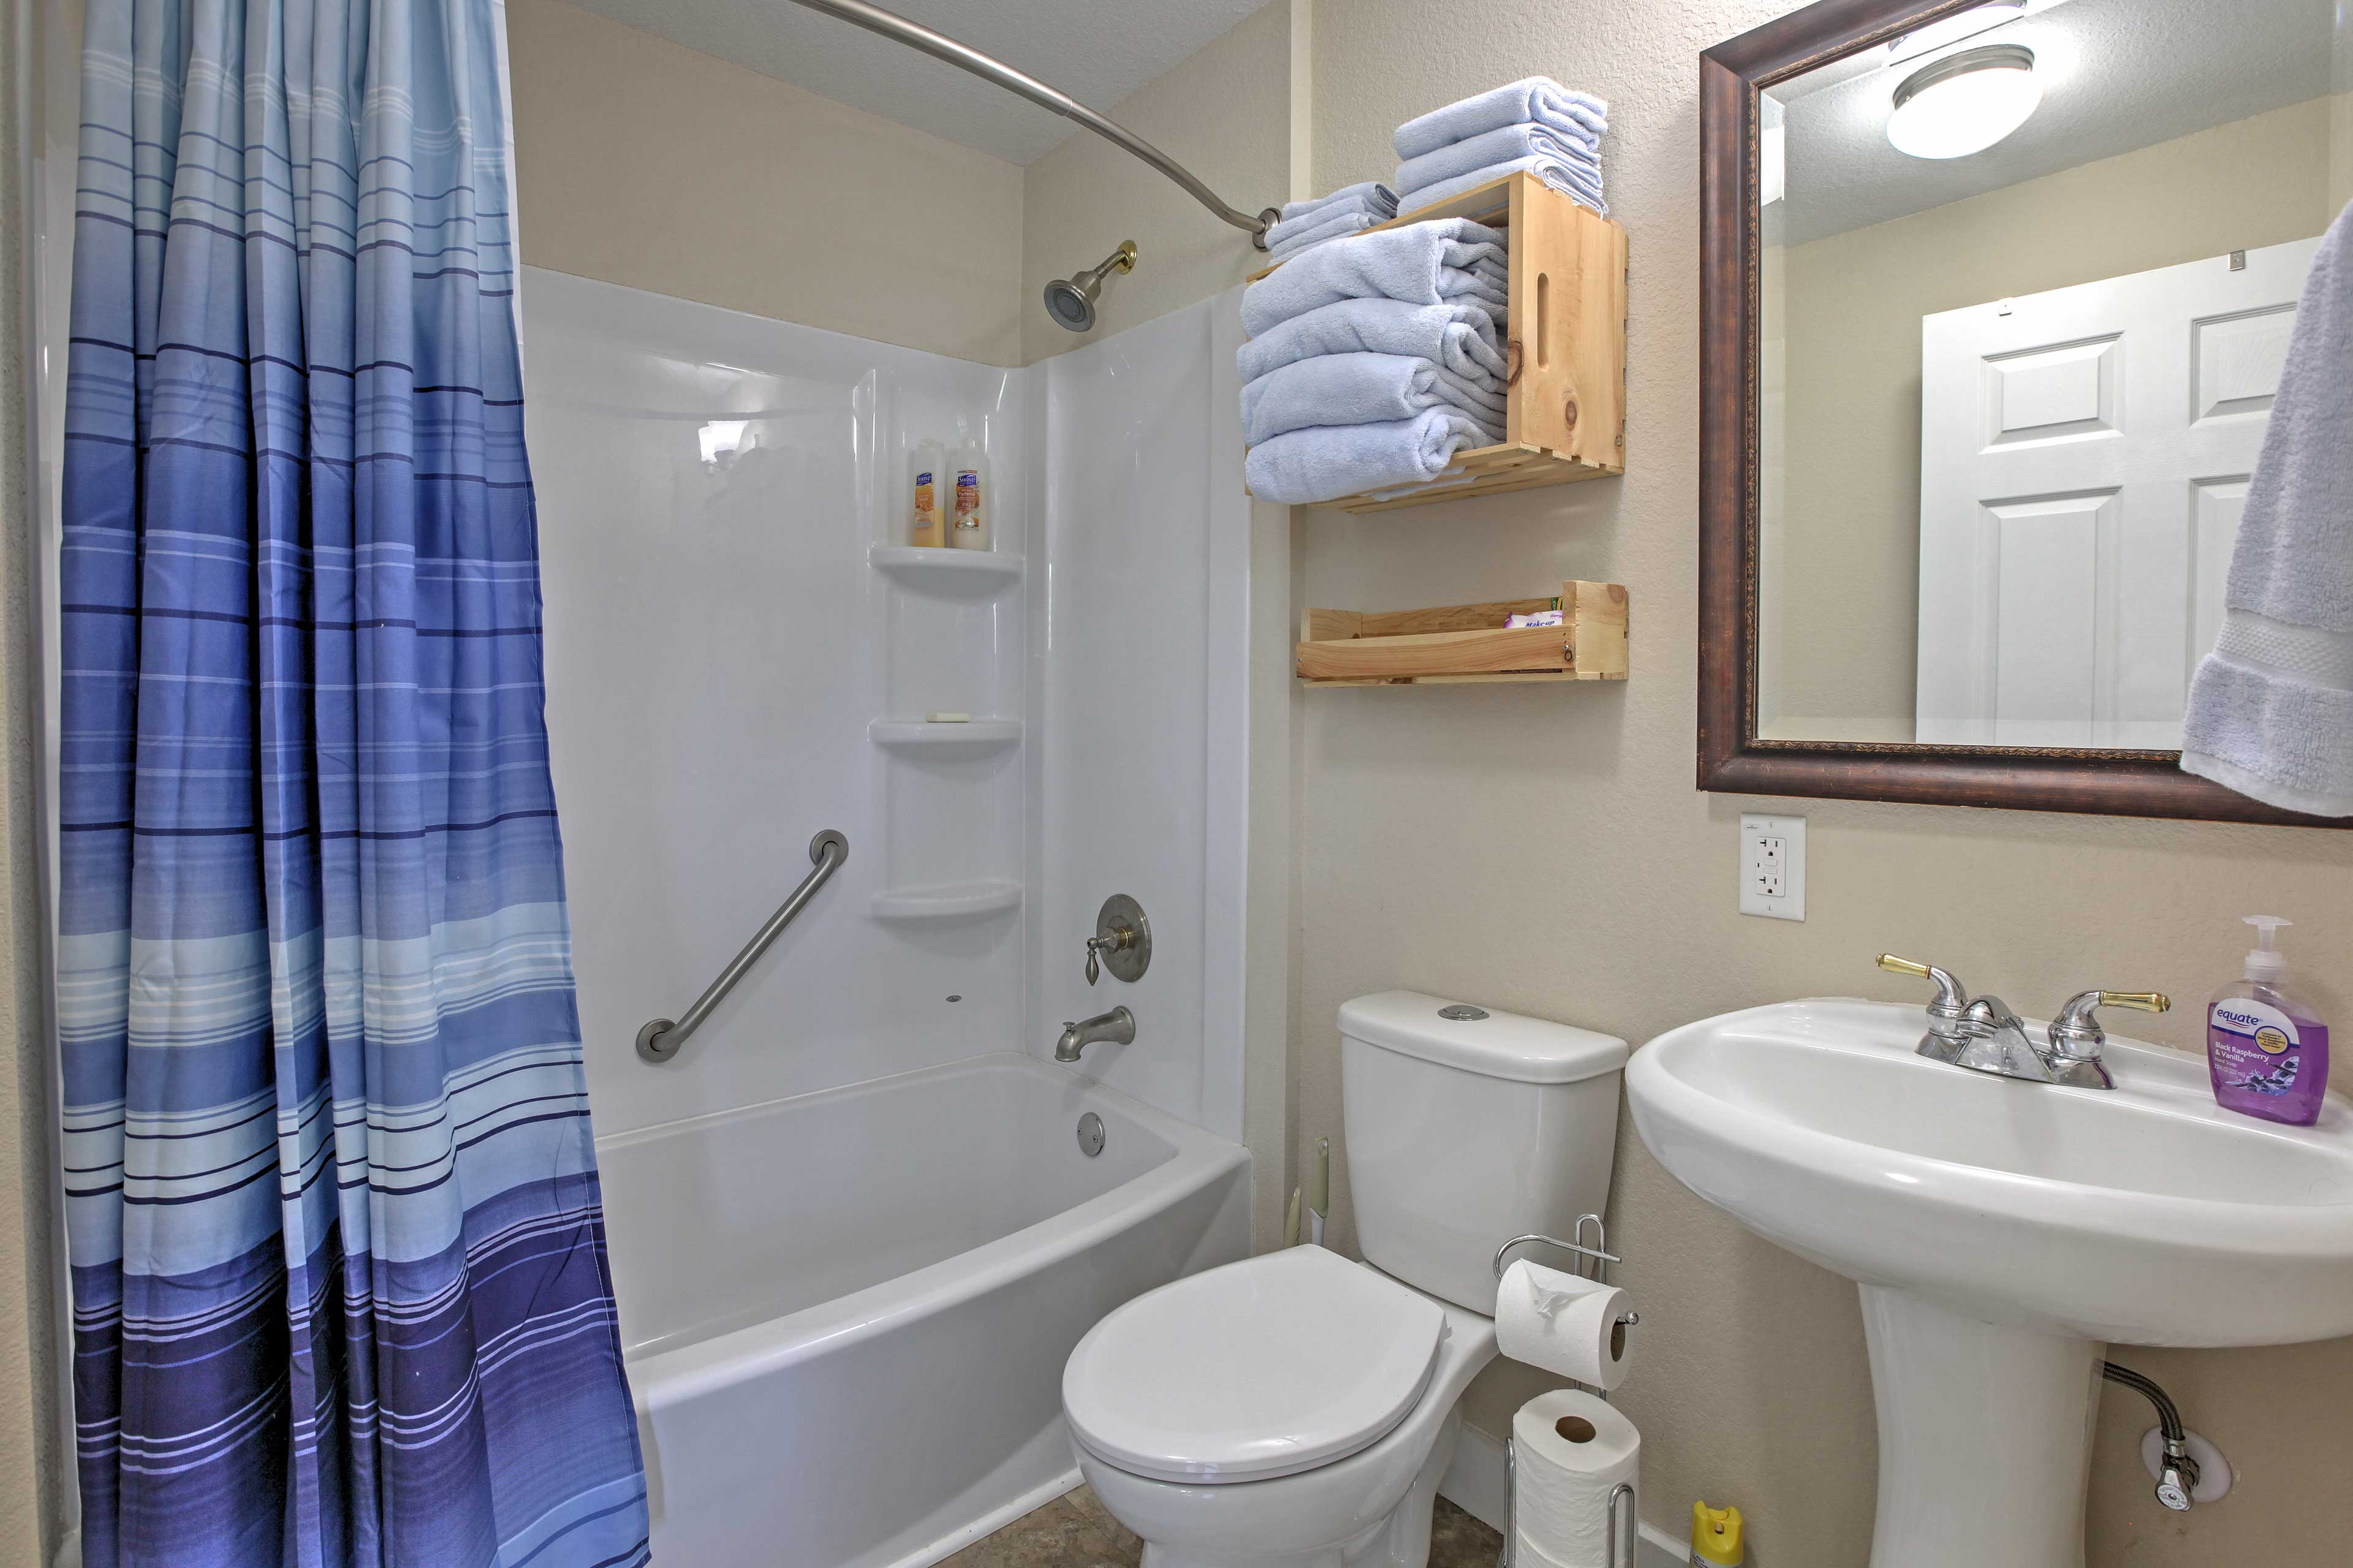 Clean up for the day in the home's bathroom, which boasts a shower/tub combo.